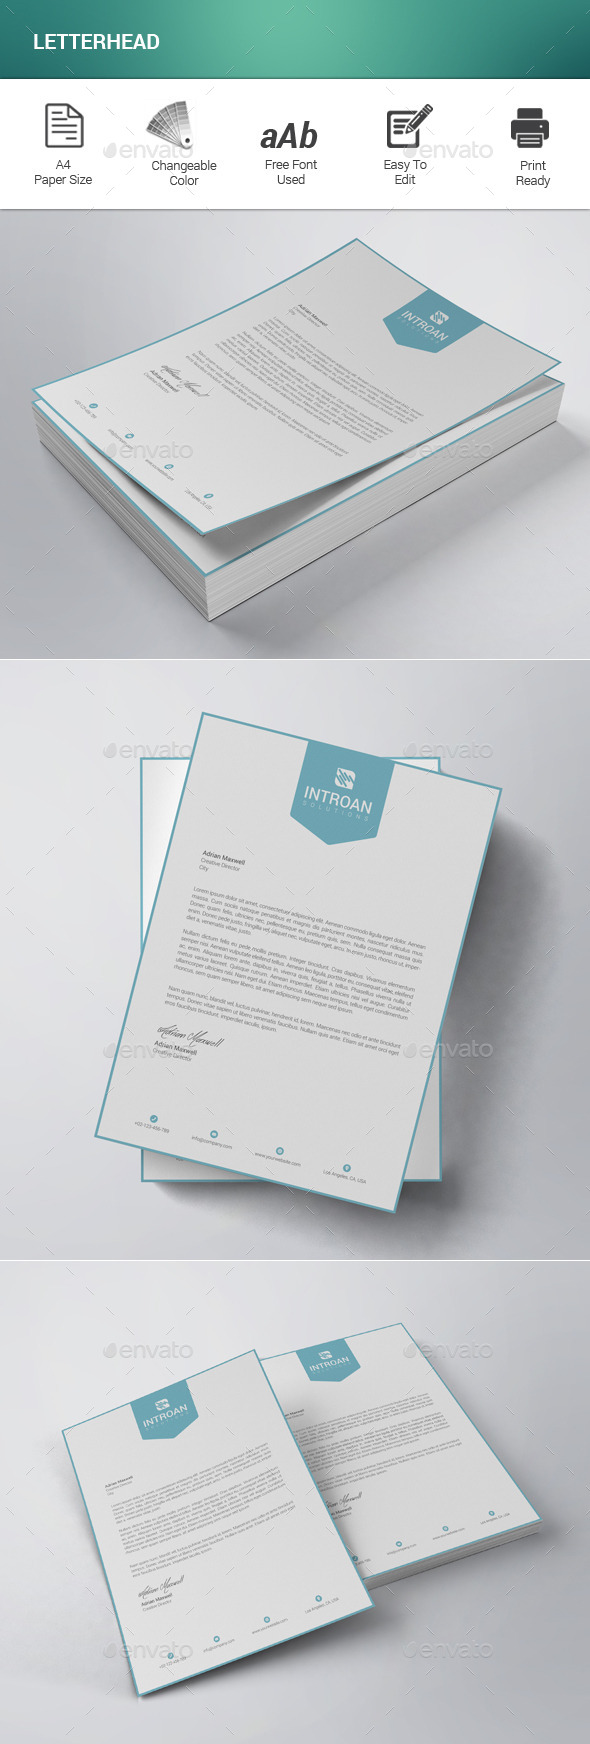 free personal letterhead templates word – Free Letterhead Templates for Word